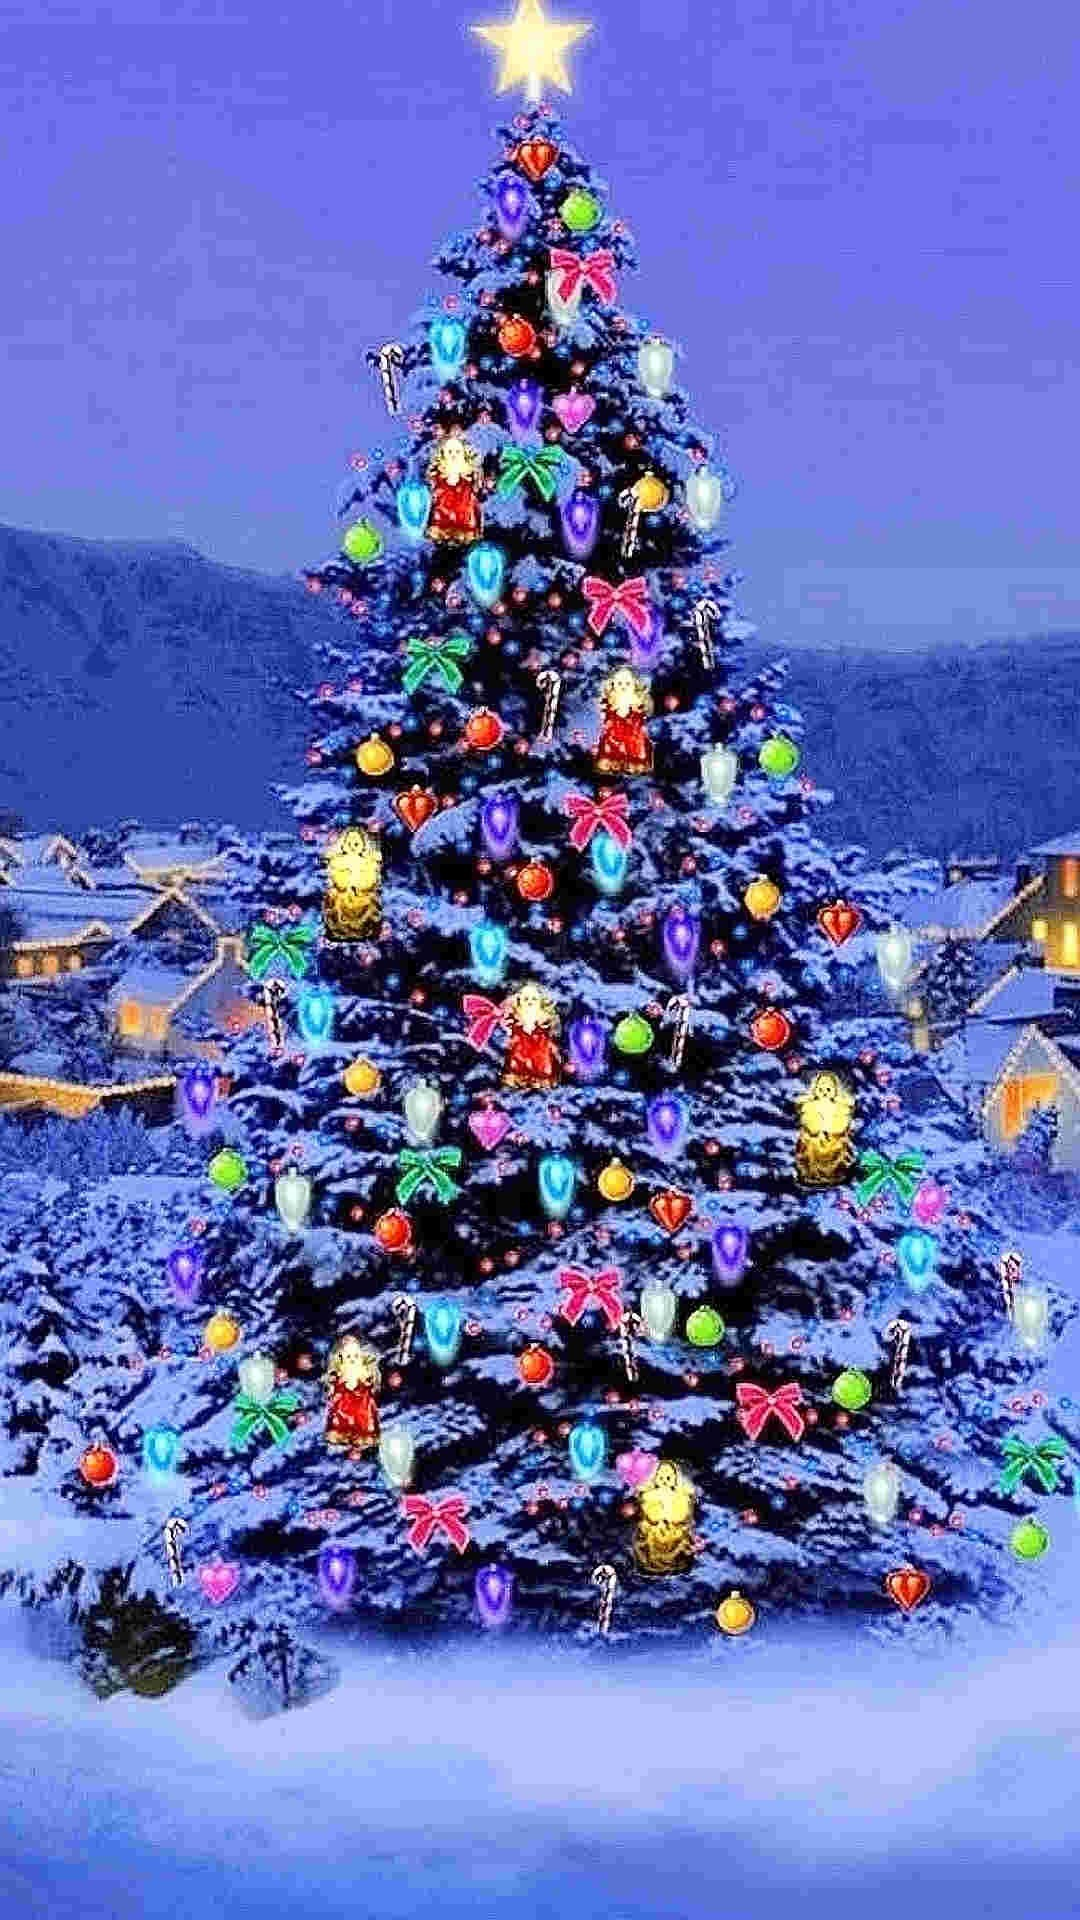 bling bling Christmas tree with star iPhone 6 plus wallpaper #2014 # Christmas #Tree